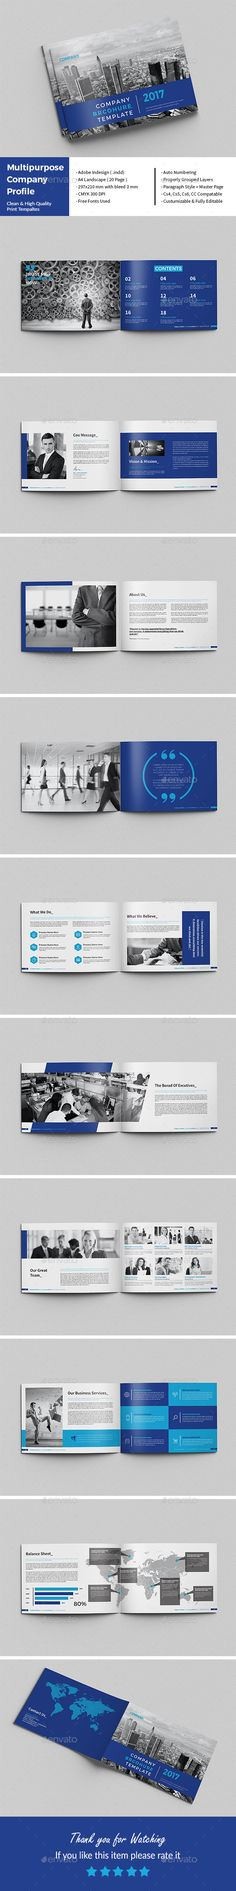 Company Profile 2017 Template INDD Company Profile Brochure - company profile sample download